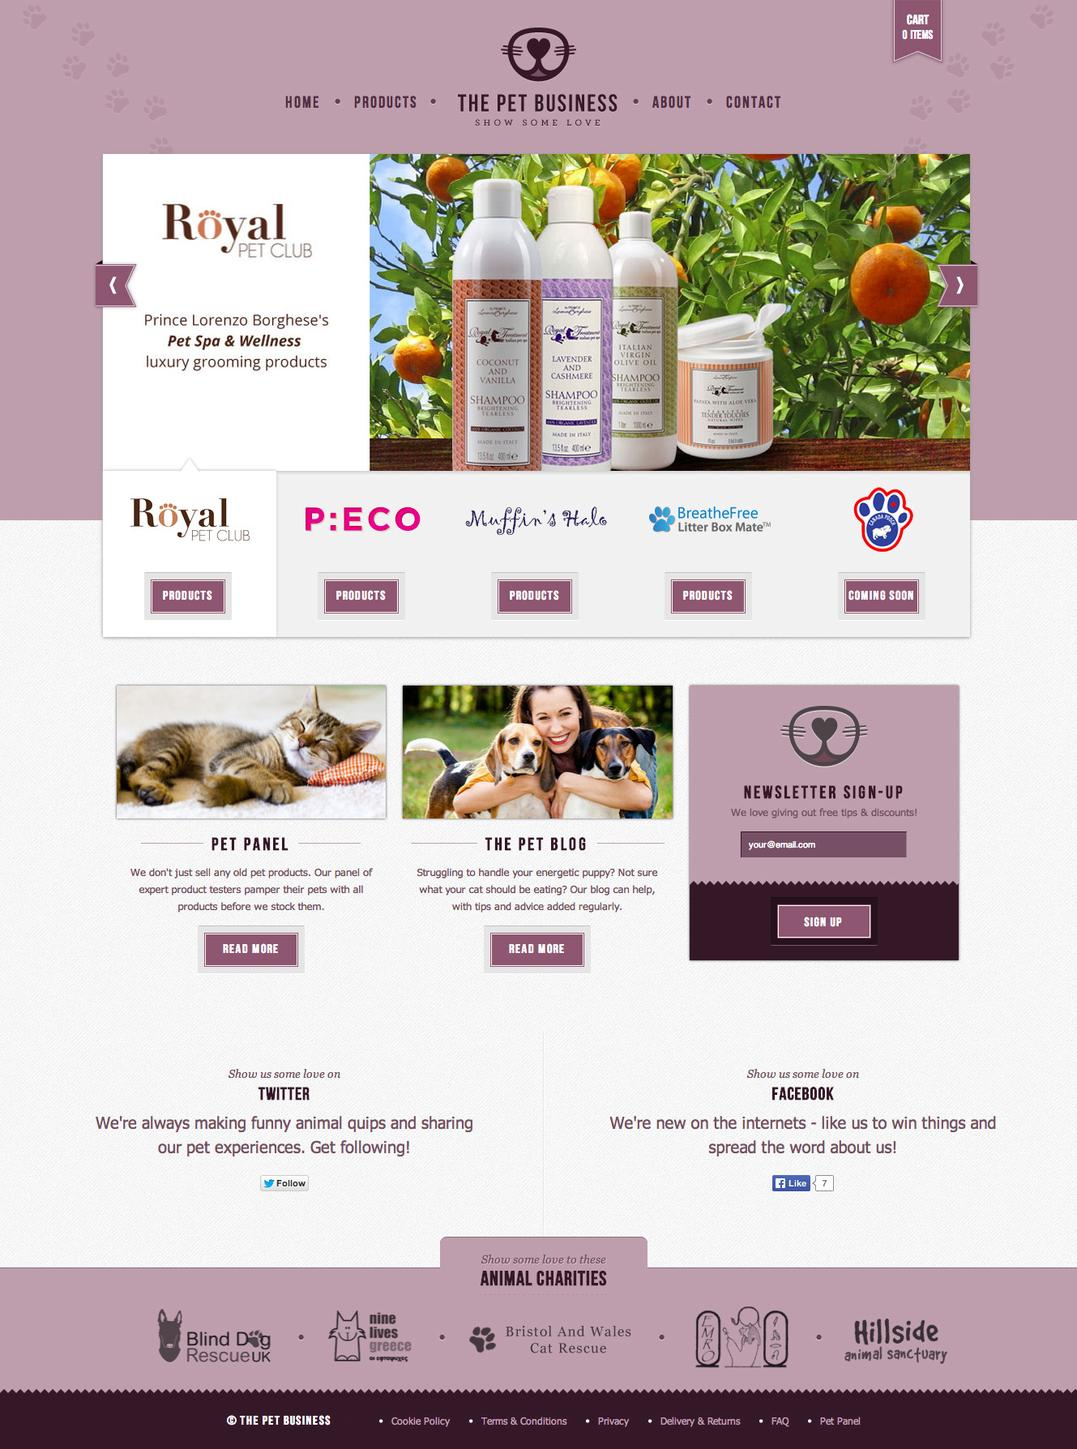 The Pet Business home page featuring a products carousel and various calls to action.